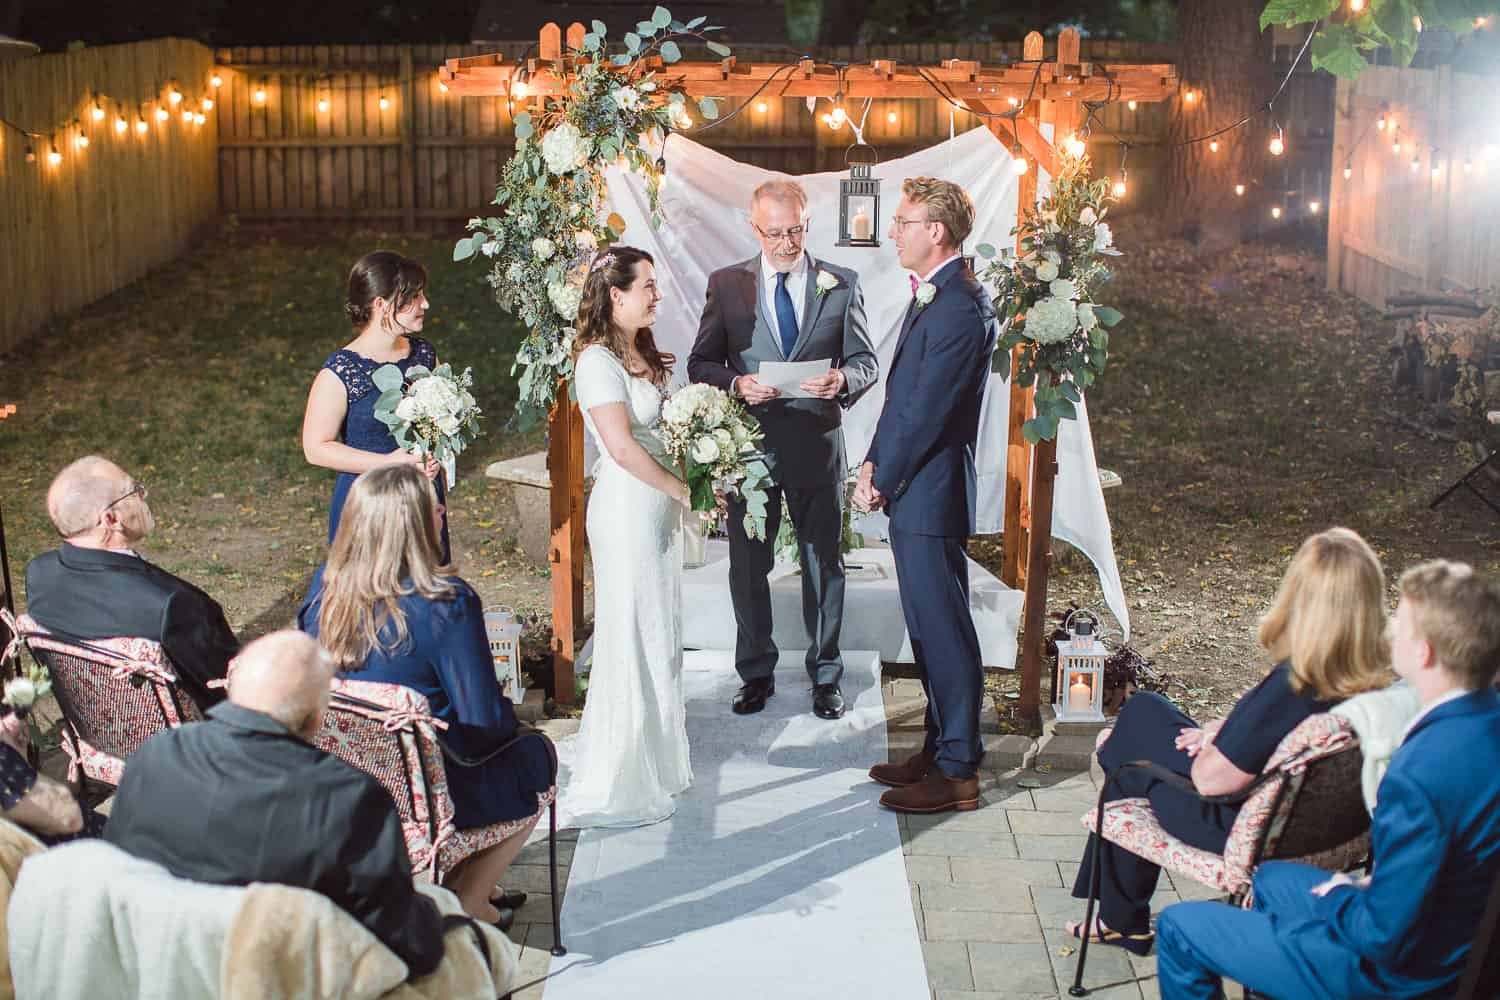 After dark wedding ceremony with twinkly lights